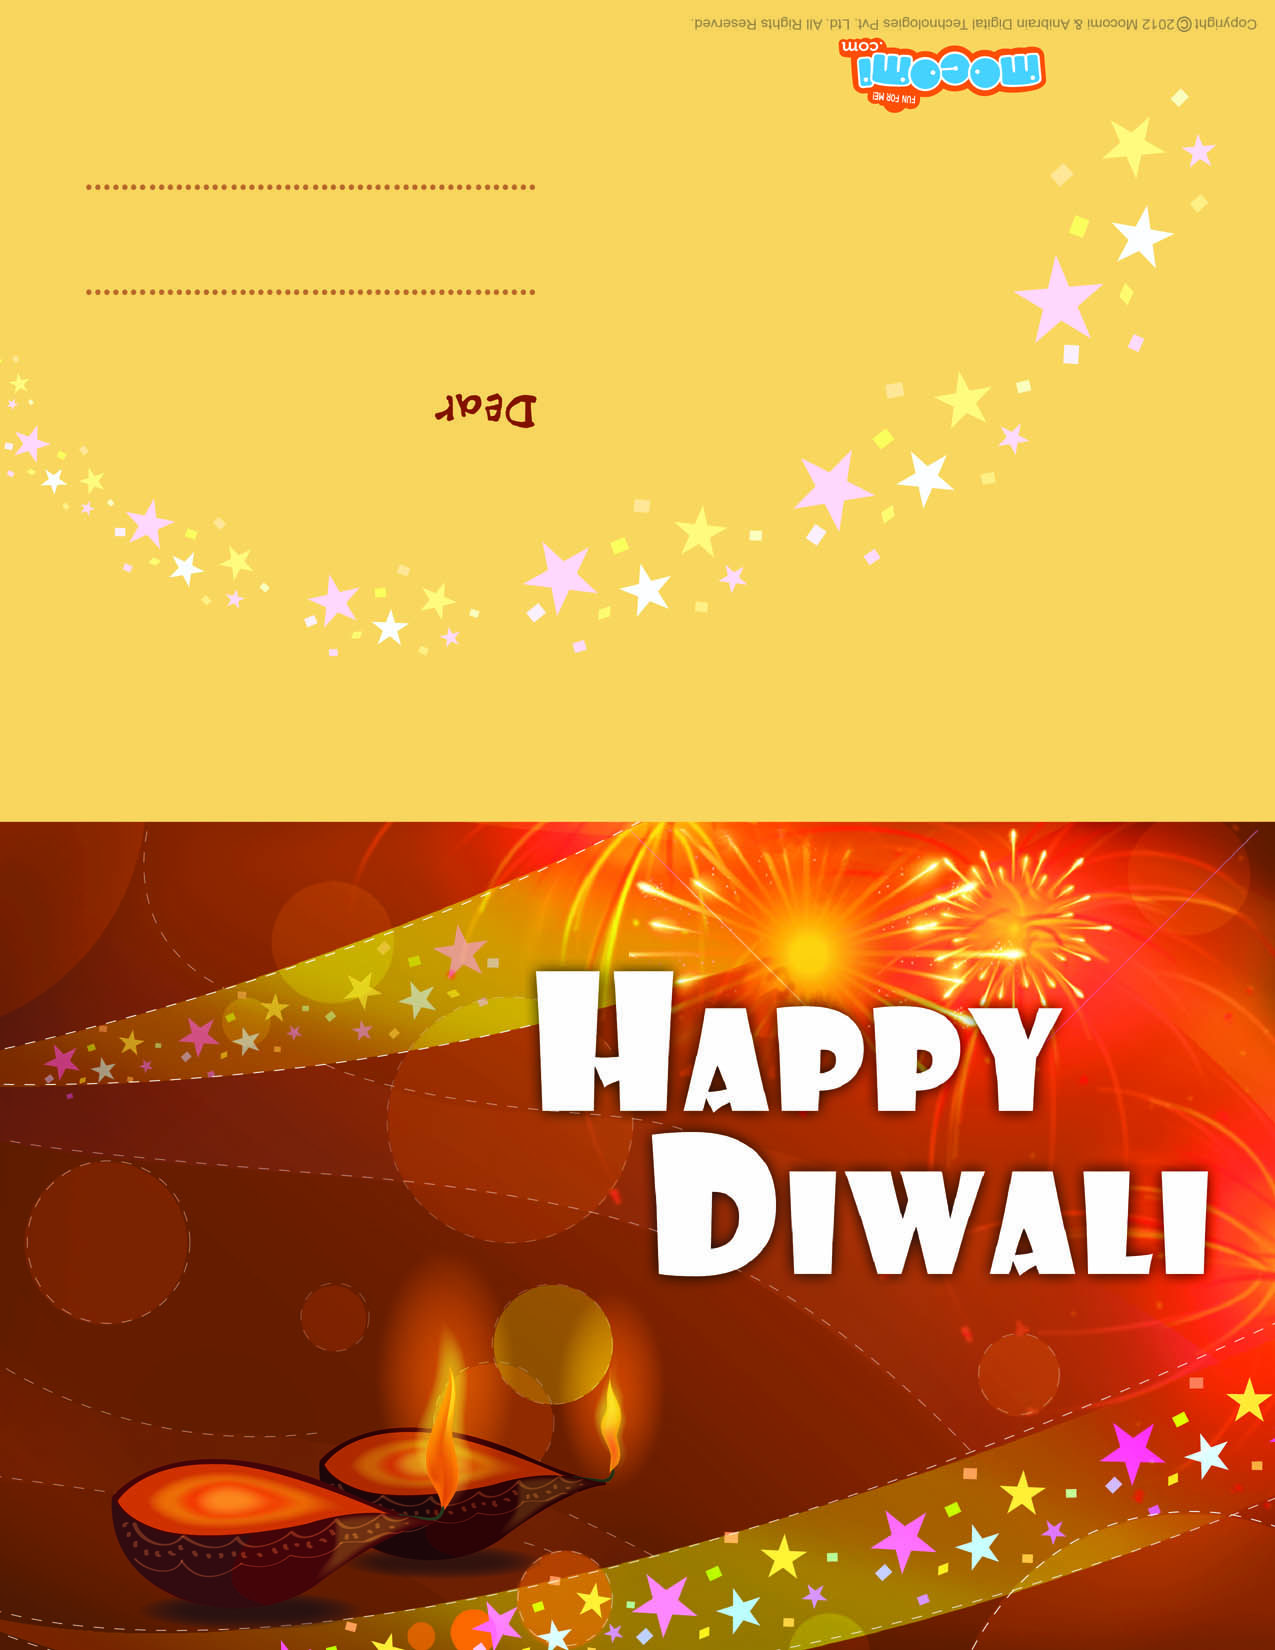 Diwali diyas diwali greeting card for kids diwali diwalidiyas download this free diwaligreetingcard to send your near and dear ones this diwali download here diwali diya wallpaper for kids m4hsunfo